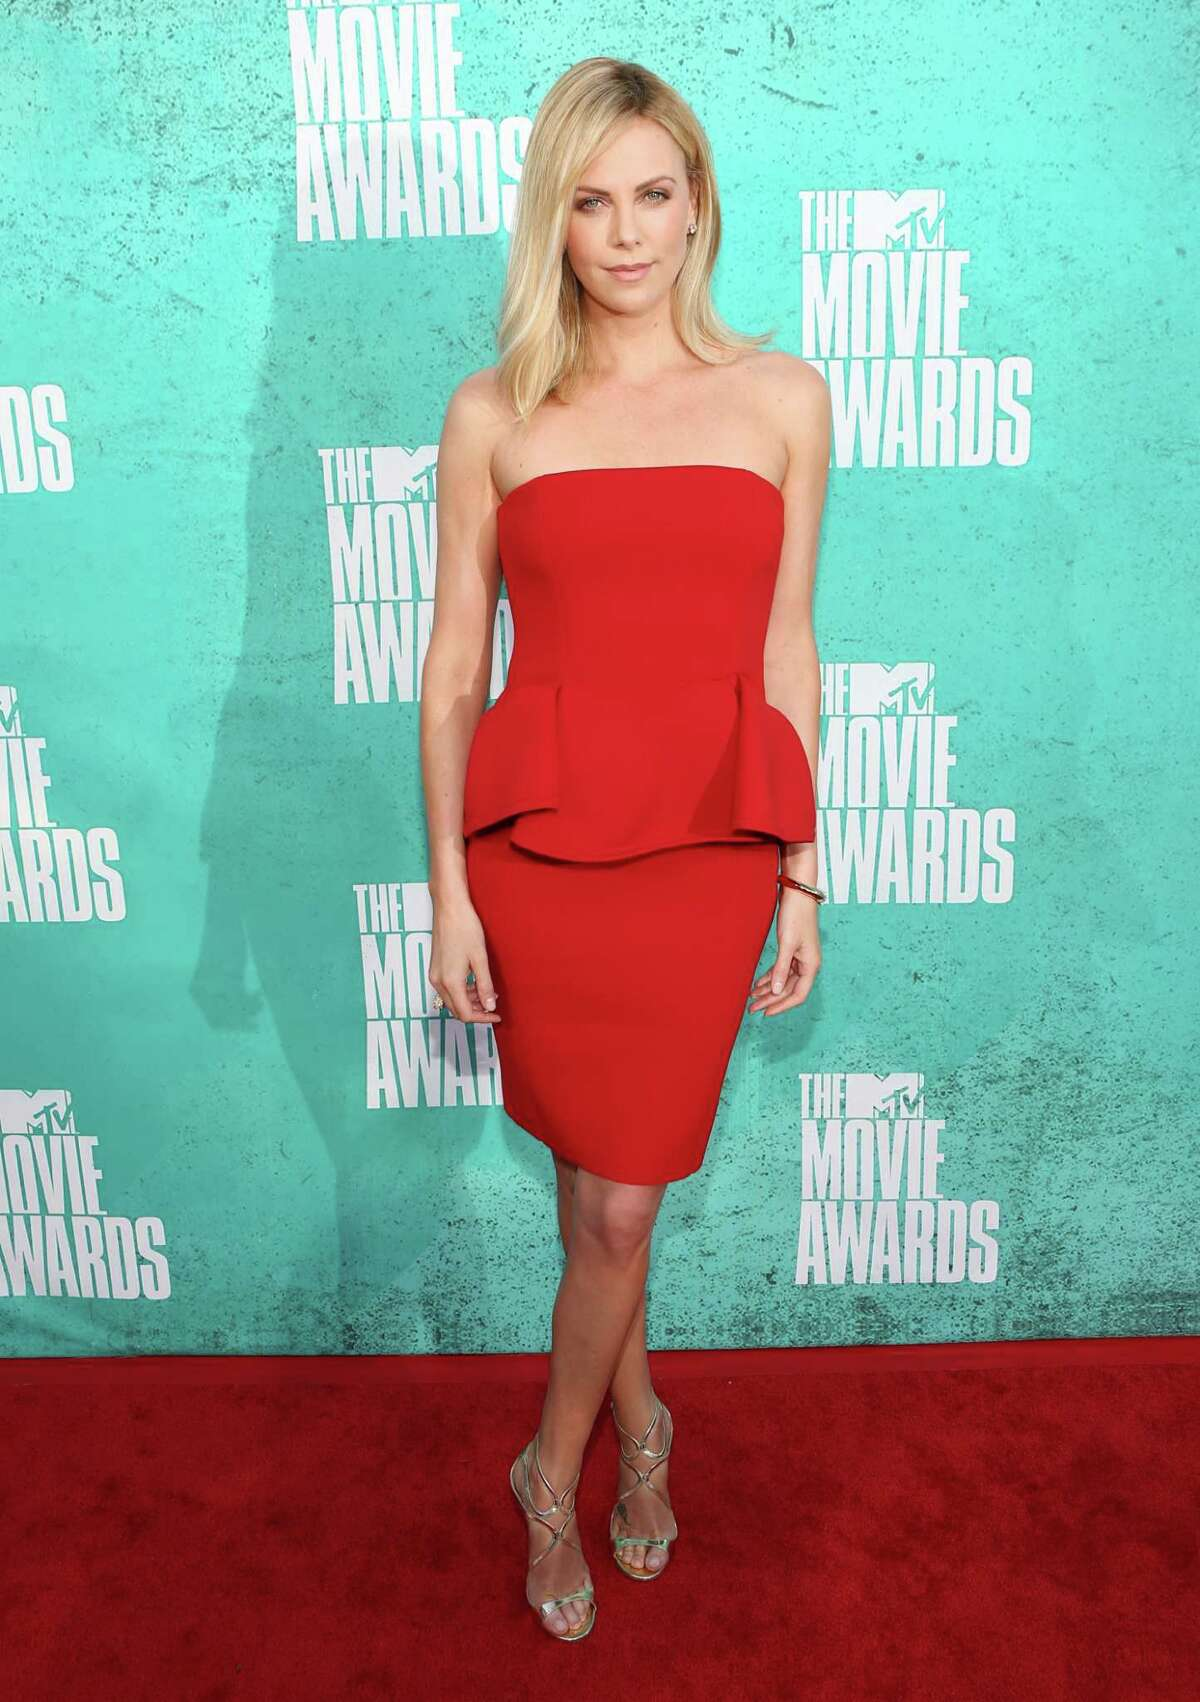 UNIVERSAL CITY, CA - JUNE 03: Actress Charlize Theron arrives at the 2012 MTV Movie Awards held at Gibson Amphitheatre on June 3, 2012 in Universal City, California.